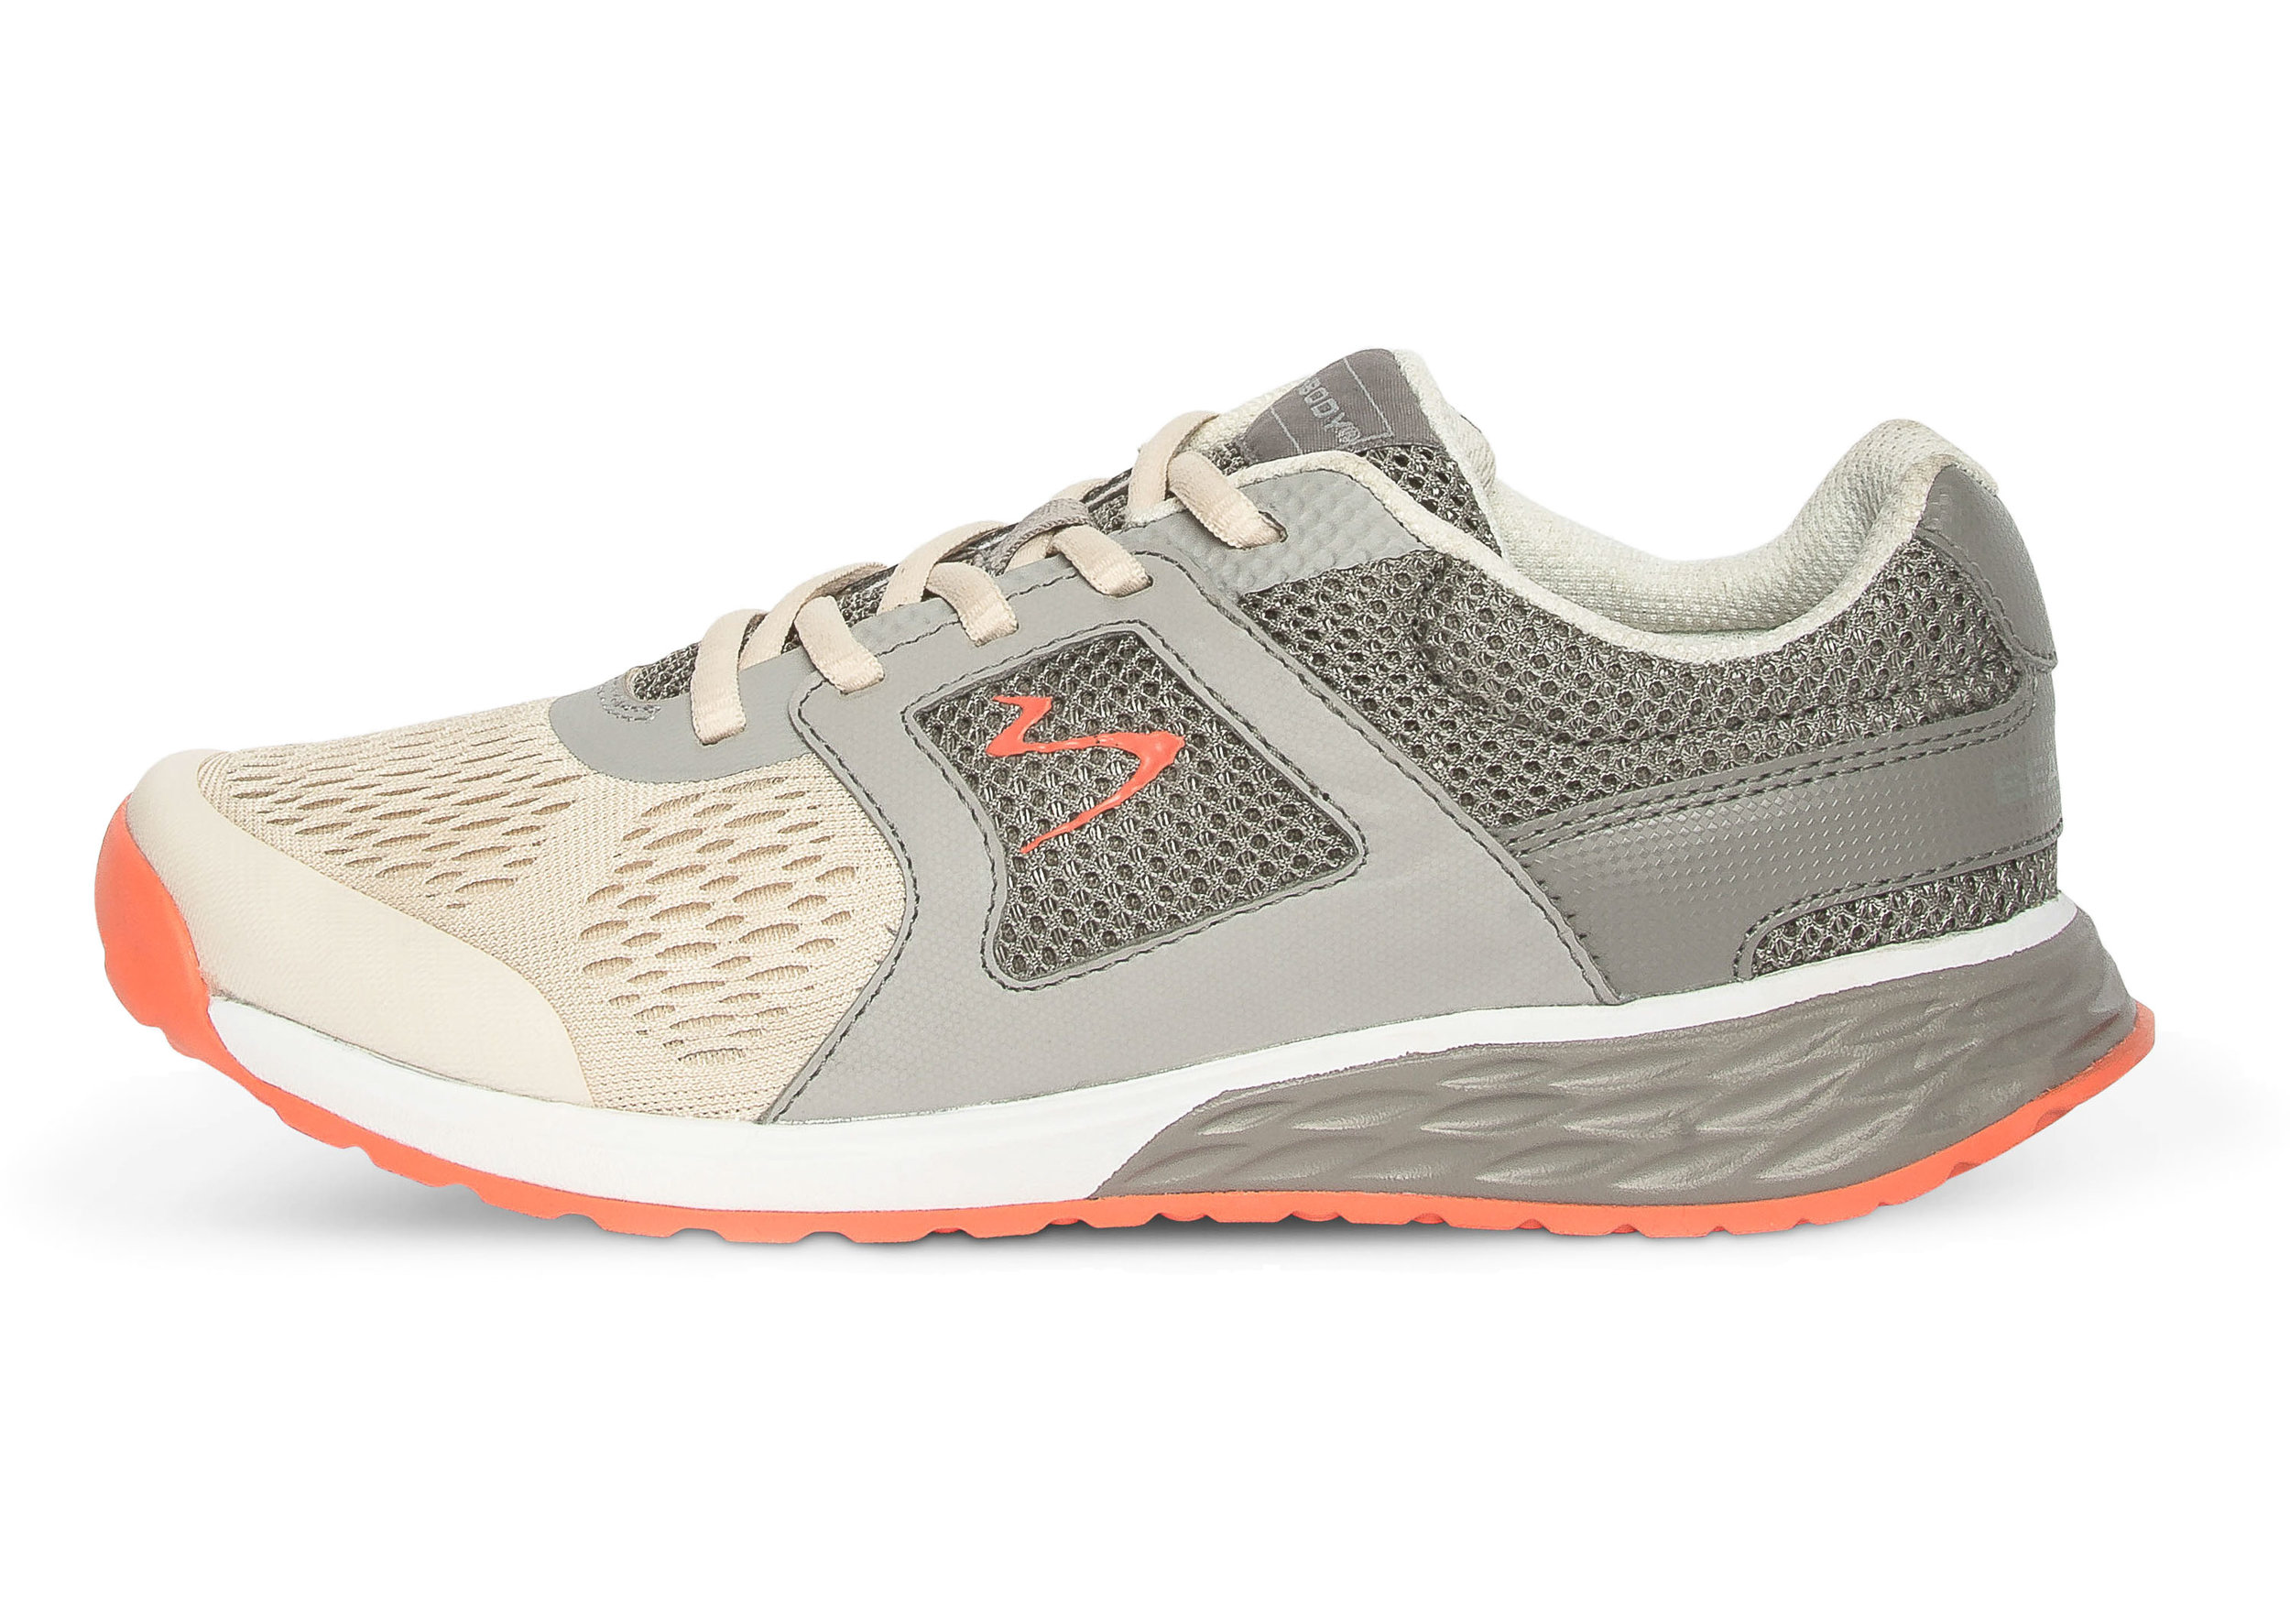 BEACHBODY WOMENS IGNITE BIRCH GREY CORAL